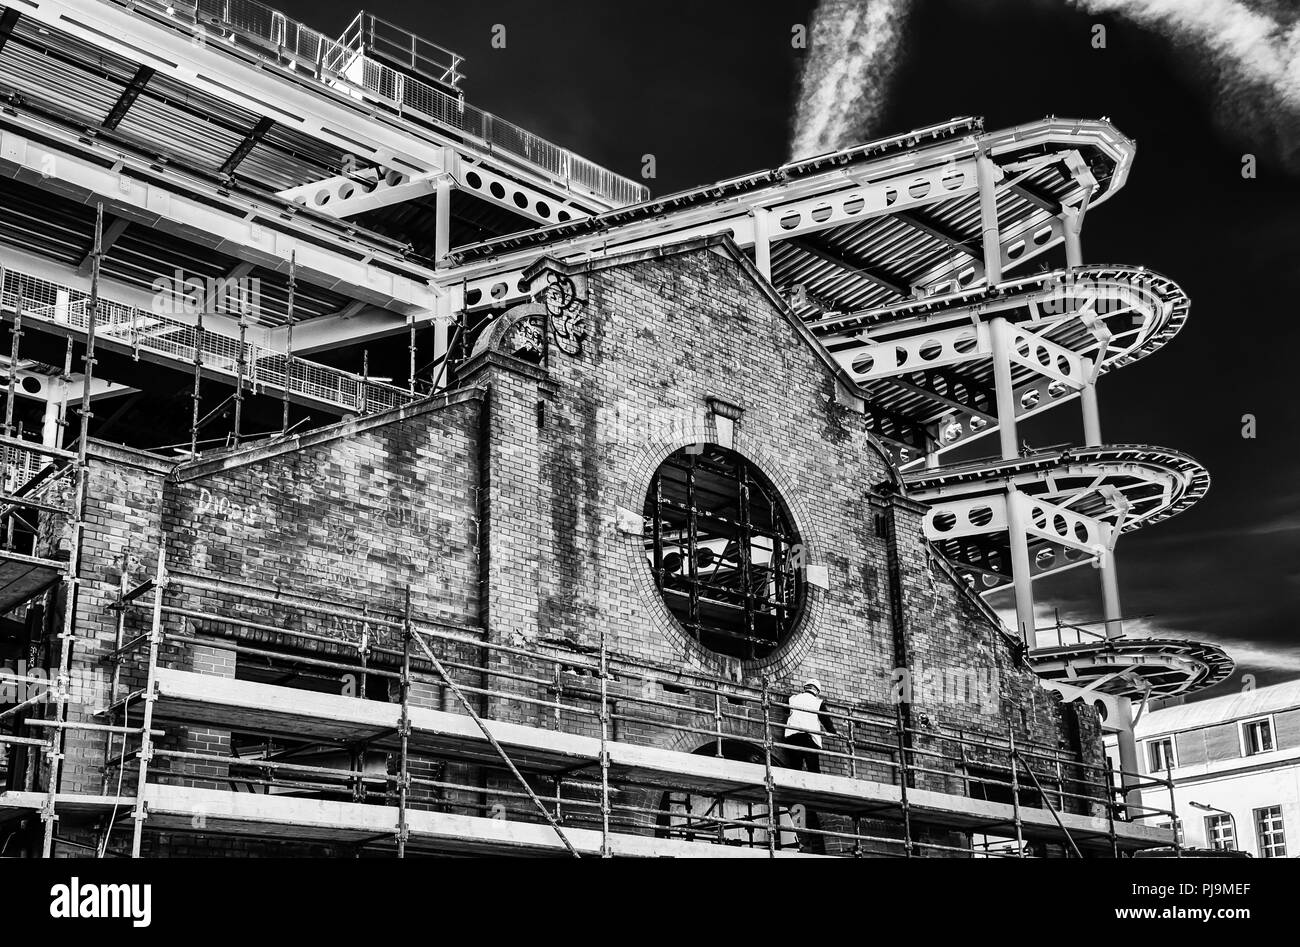 Dublin, Ireland, March 2018, a construction site where modern architecture is add on a old building facade - Stock Image